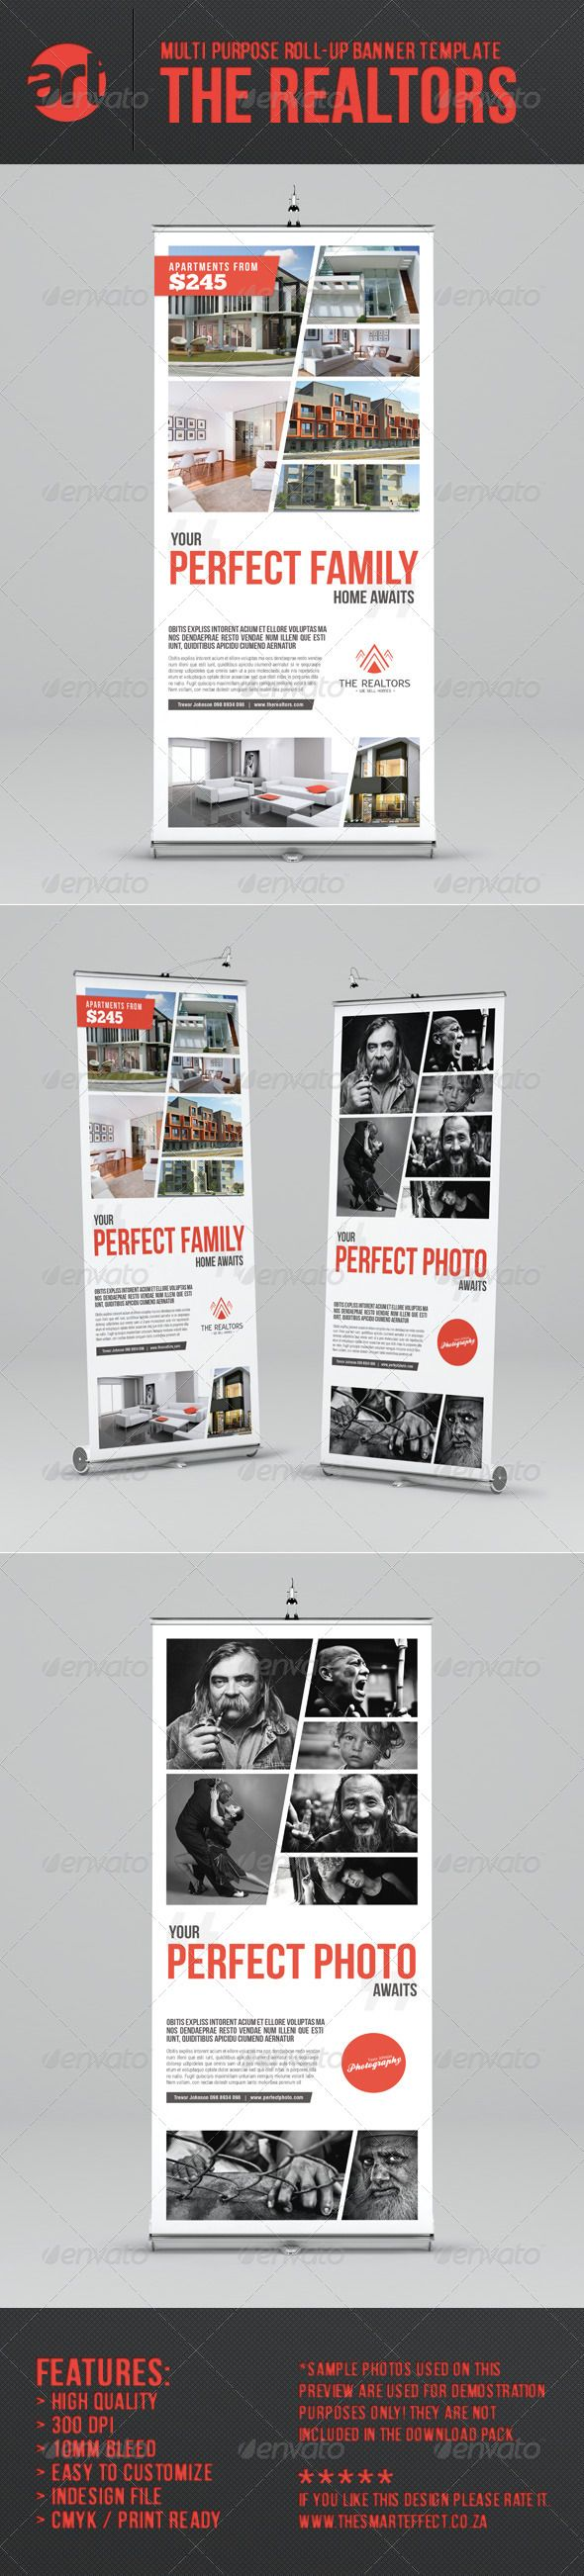 The Realtors Multi-Purpose Roll-up Banner Template